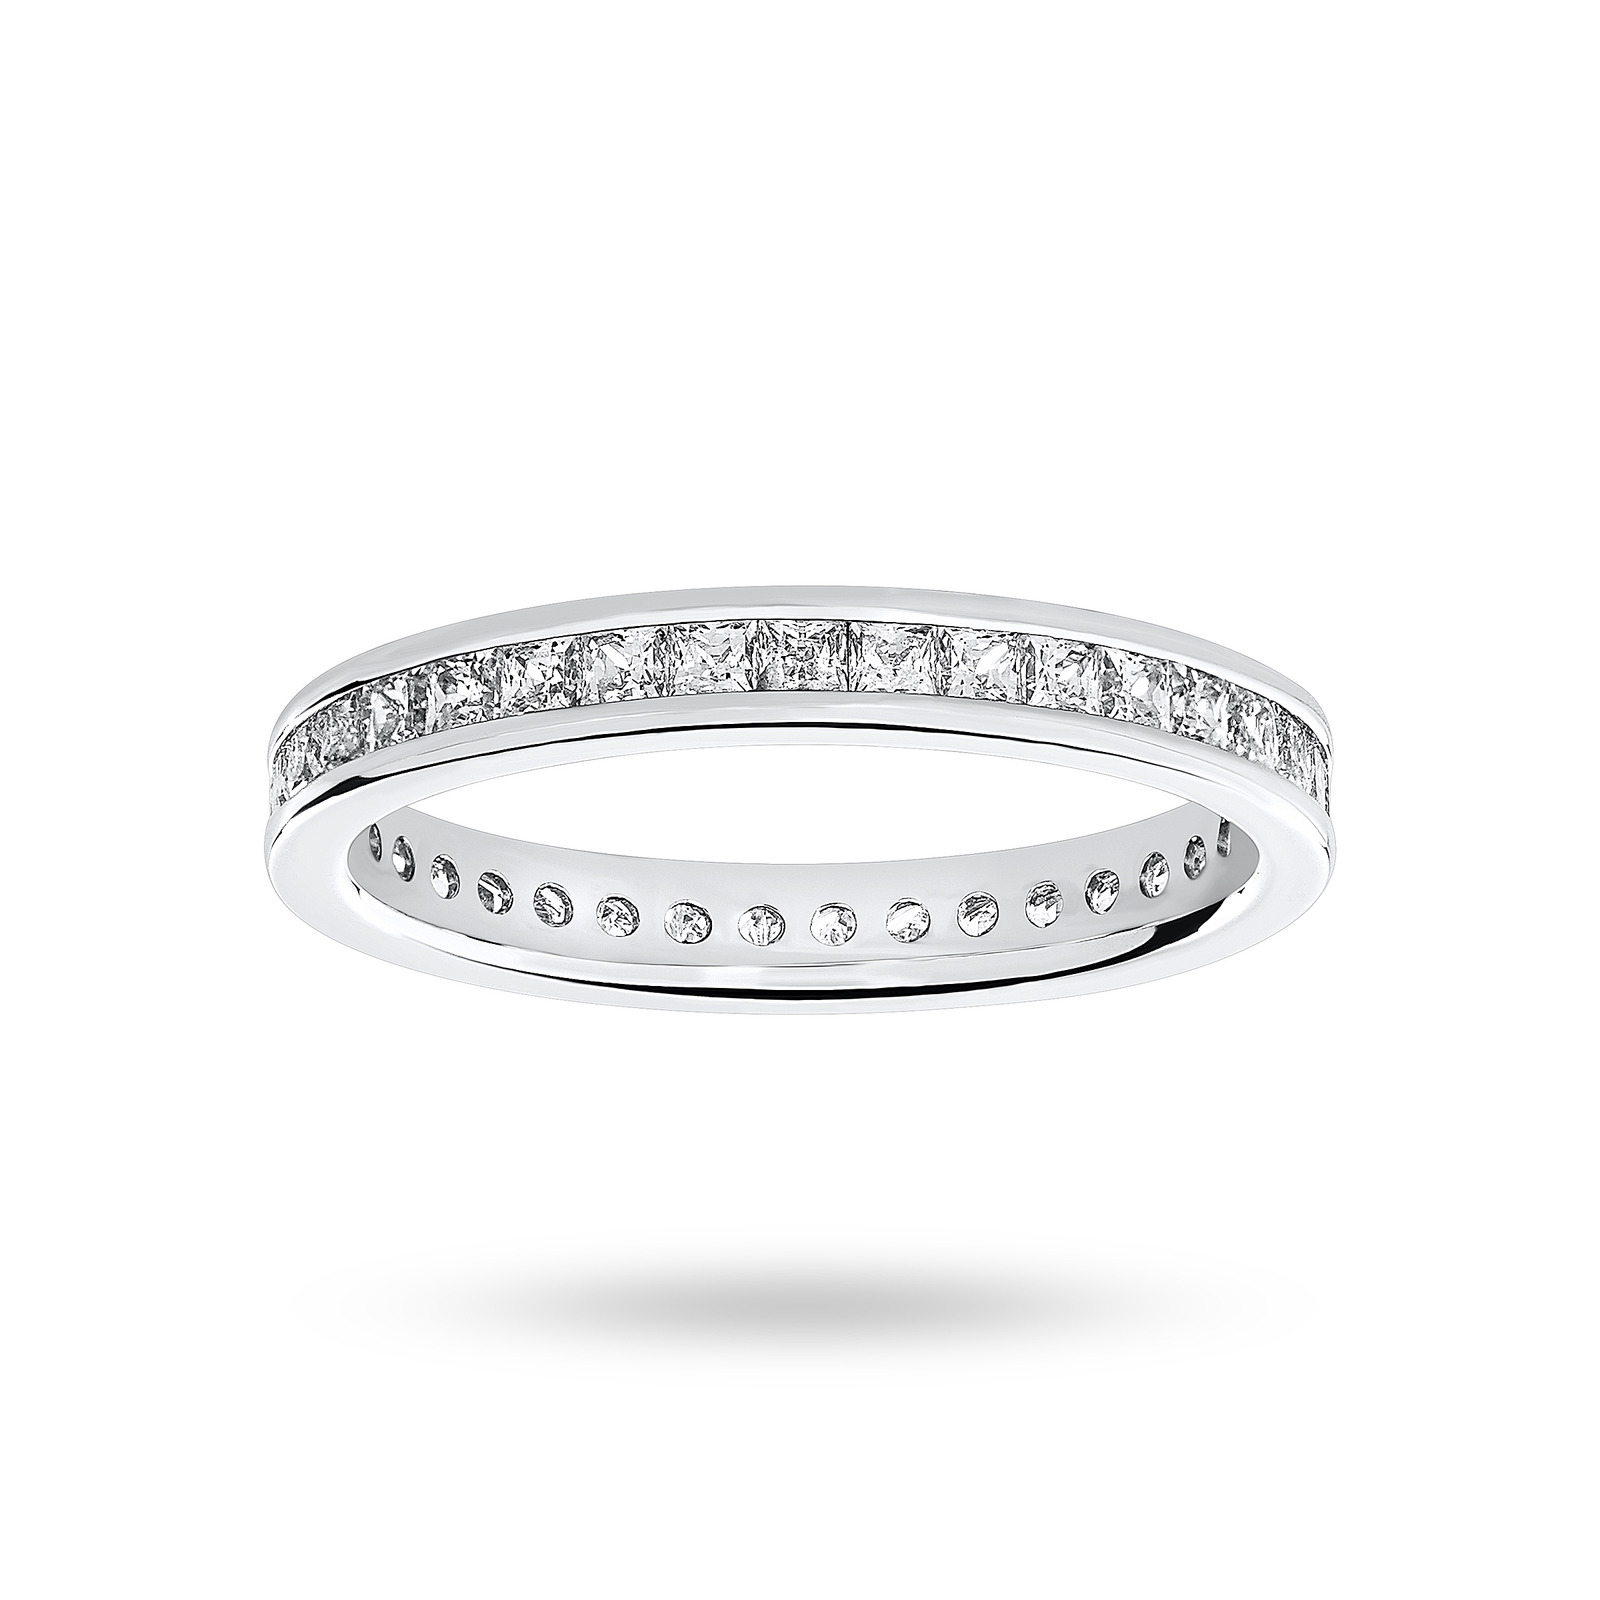 18 Carat White Gold 1.00 Carat Princess Cut Channel Set Full Eternity Ring